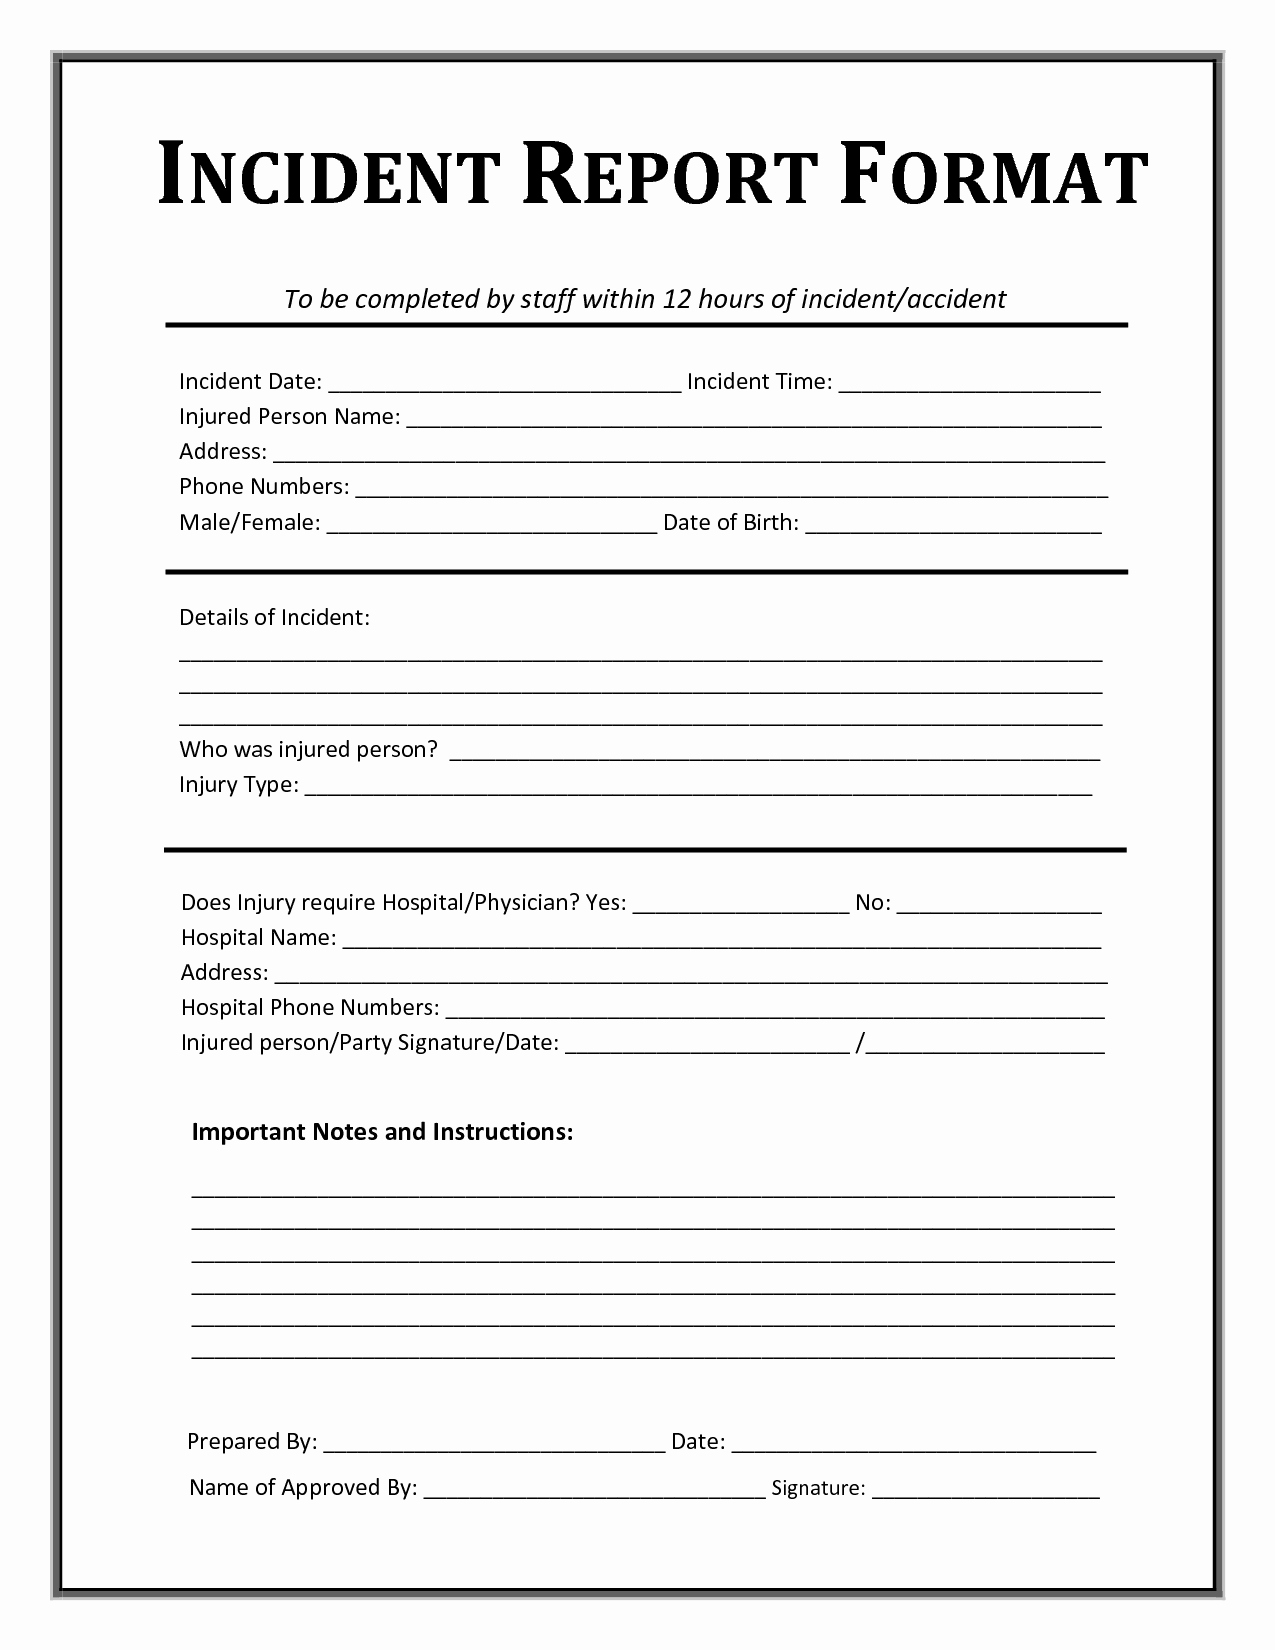 Incident Report Template Word Awesome 13 Incident Report Templates Excel Pdf formats